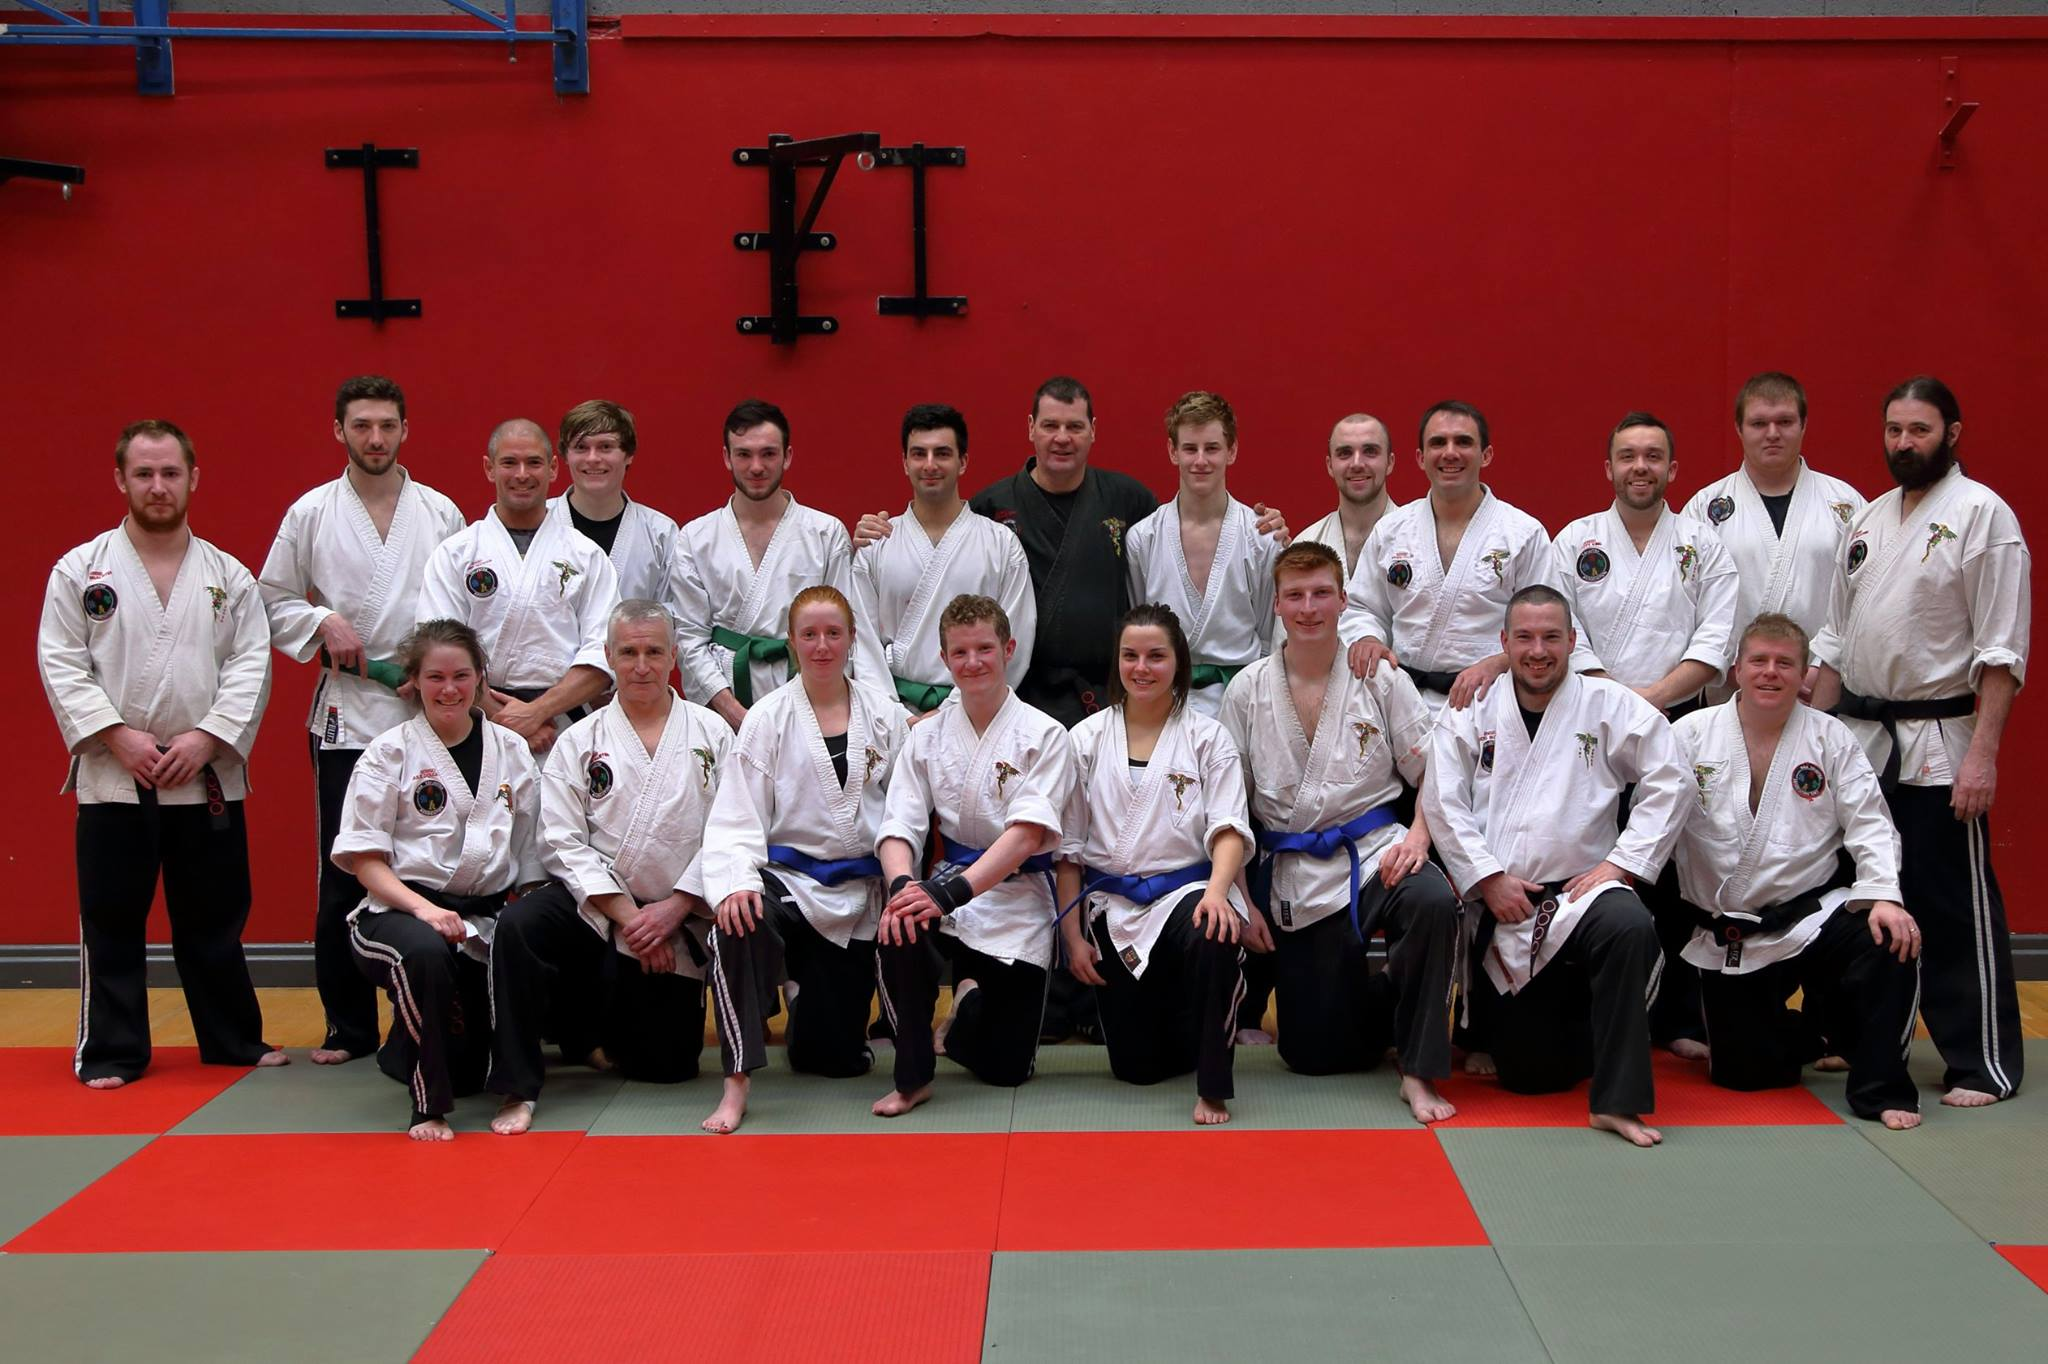 QTJ_Dec-2015_Grading_Group.jpg